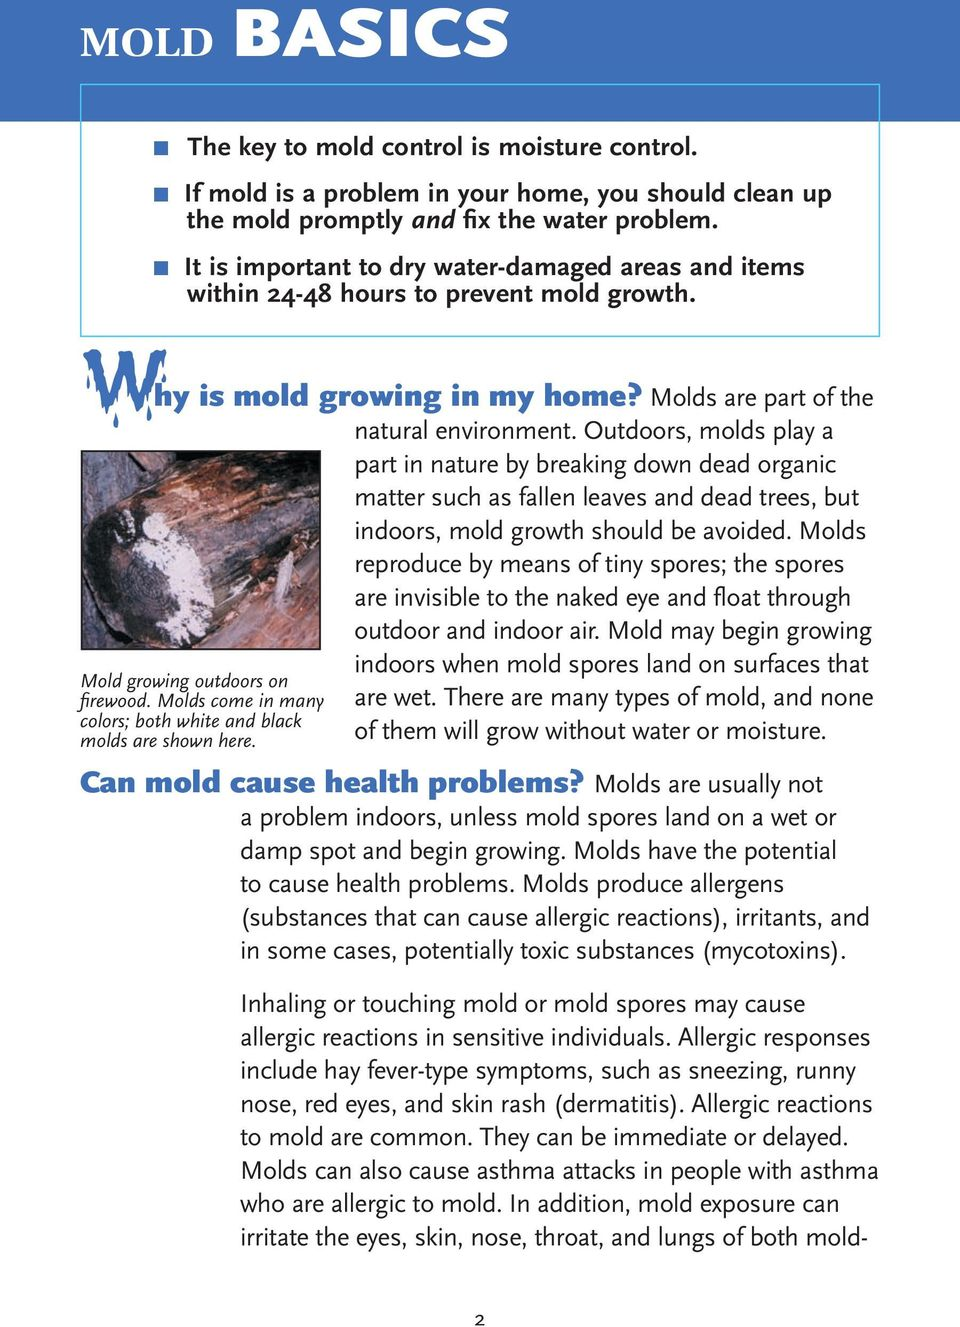 Outdoors, molds play a part in nature by breaking down dead organic matter such as fallen leaves and dead trees, but indoors, mold growth should be avoided.